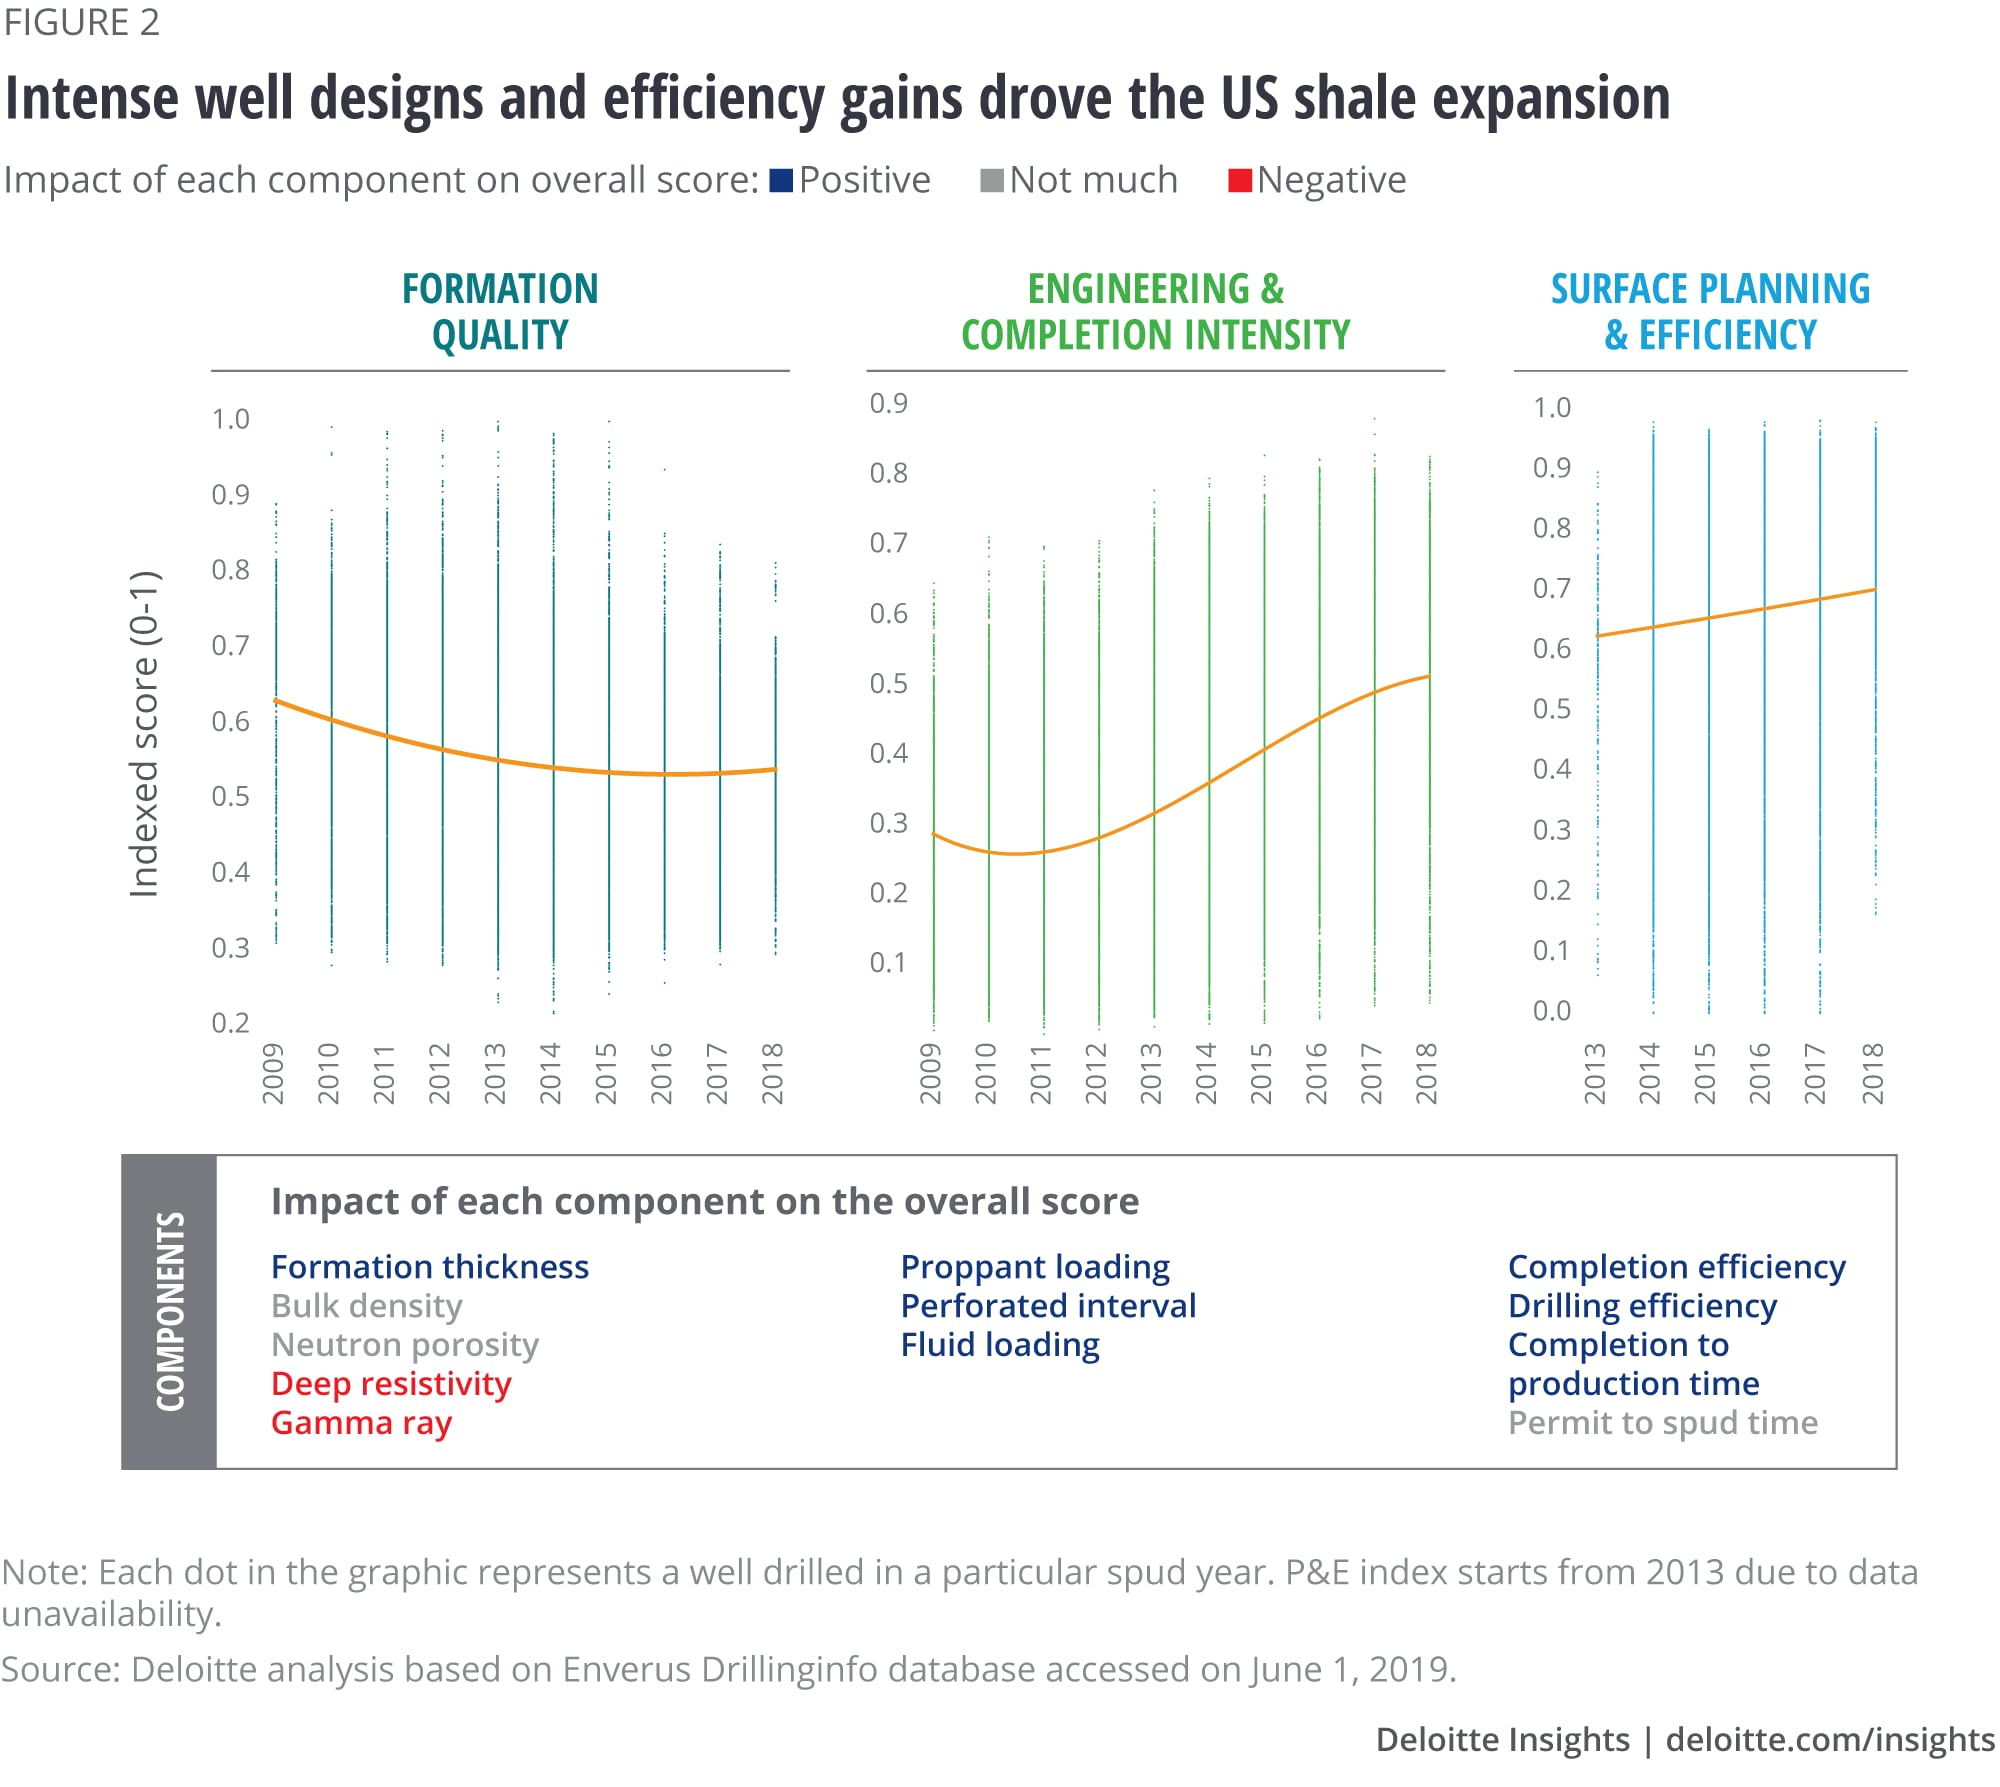 Intense well designs and efficiency gains drove shale expansion